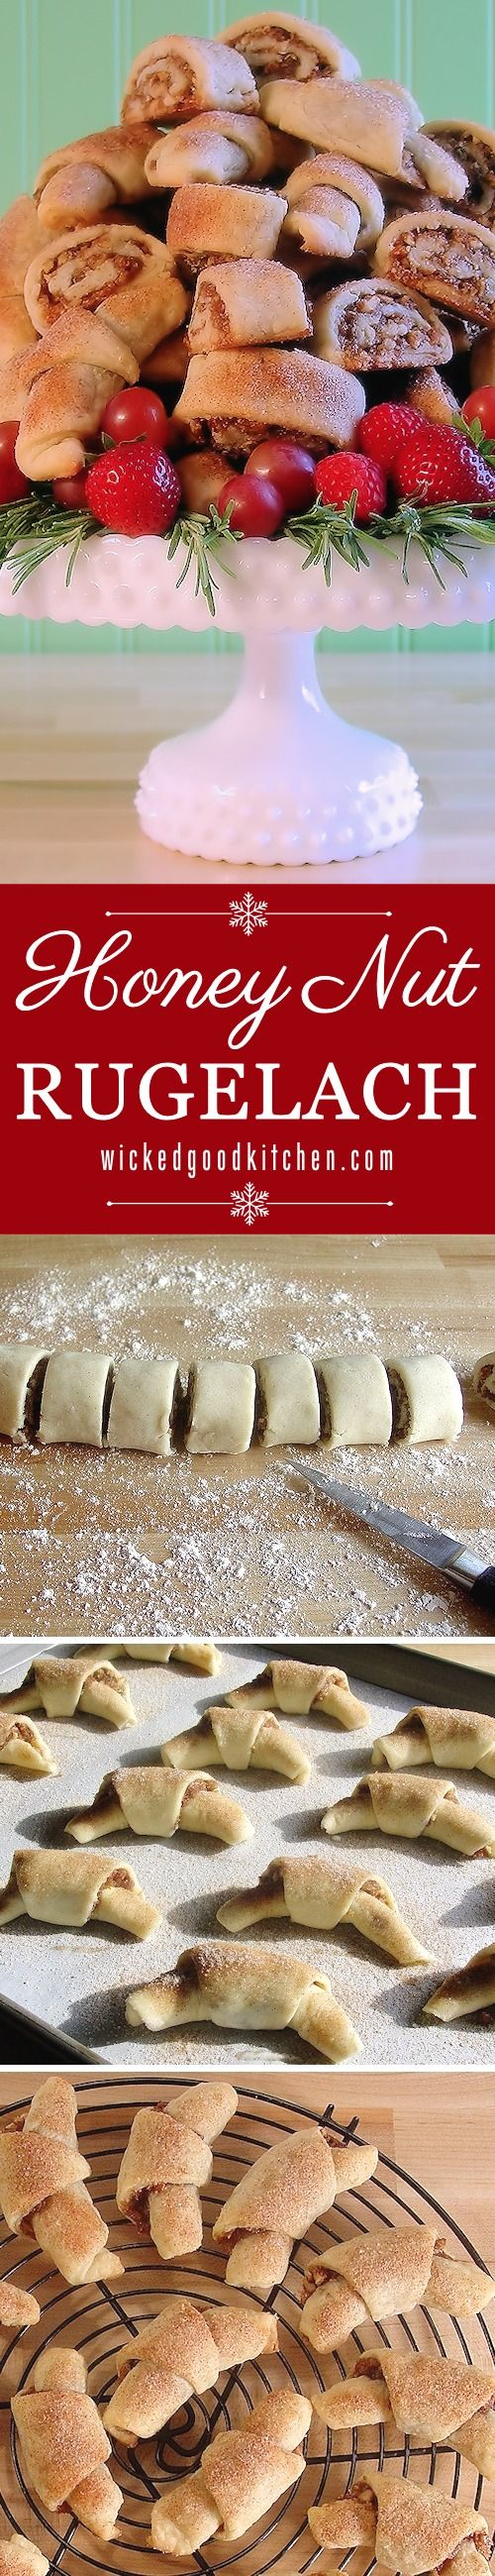 287 best Rugelach images on Pinterest | Rugelach recipe, Cookie ...